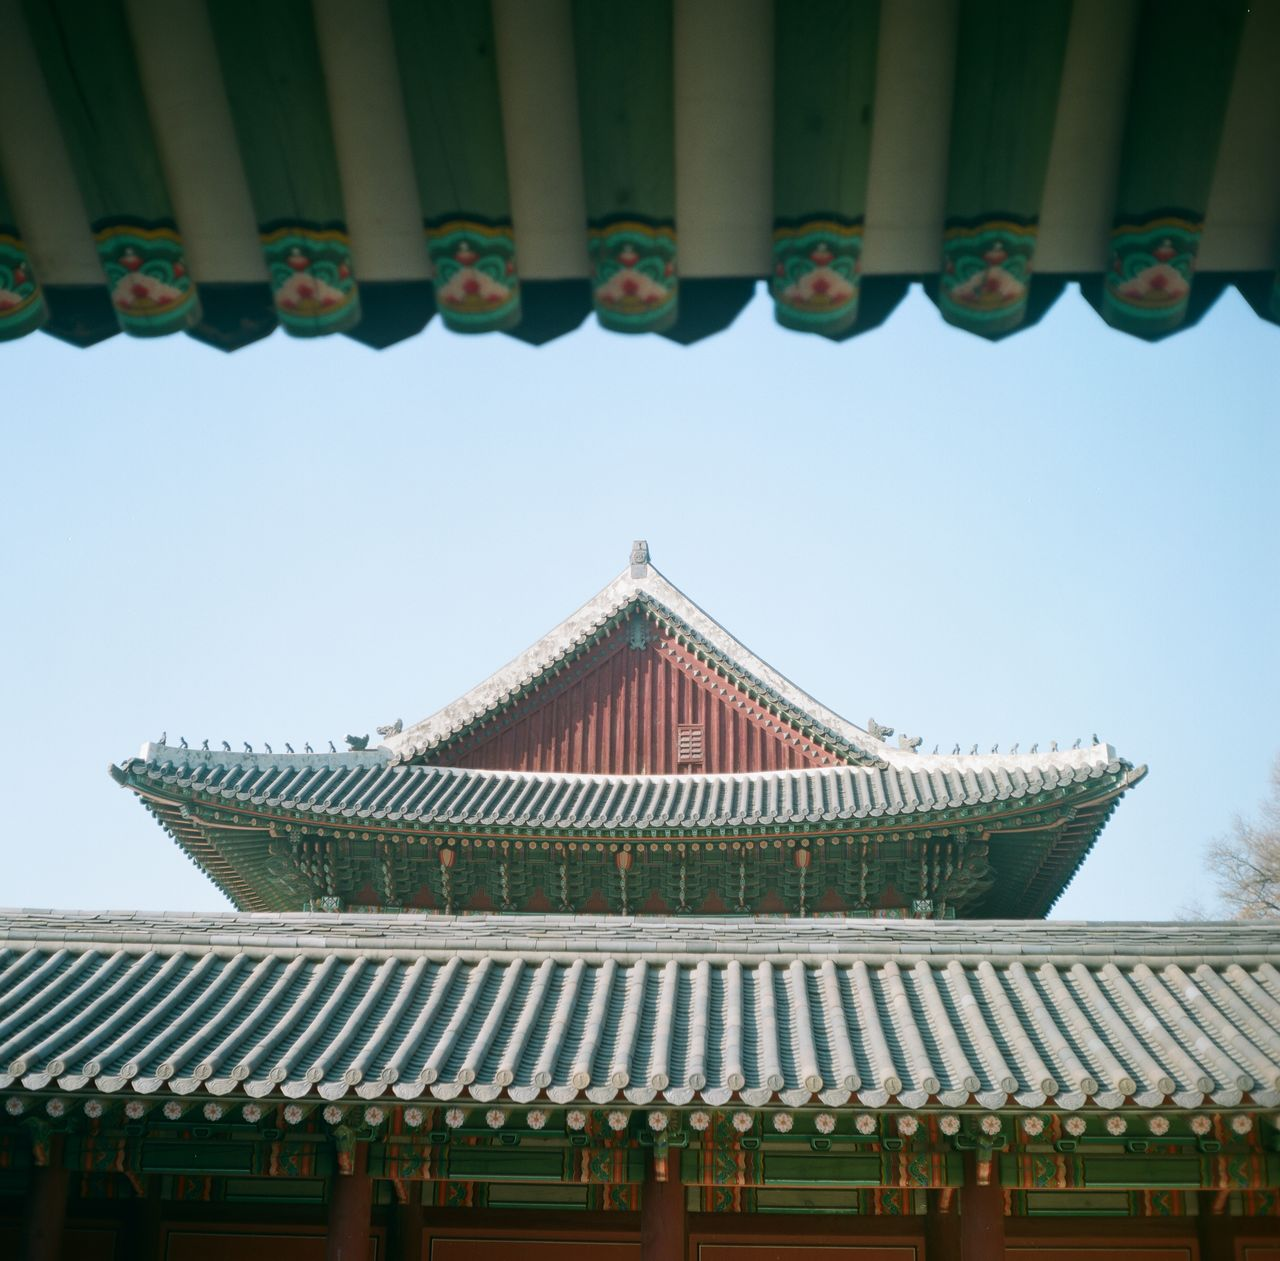 "<span style=""color: rgb(102, 102, 102); font-size: 11px; border-bottom:1px solid #999;"">가게를 가득 메운 사람들</span>"